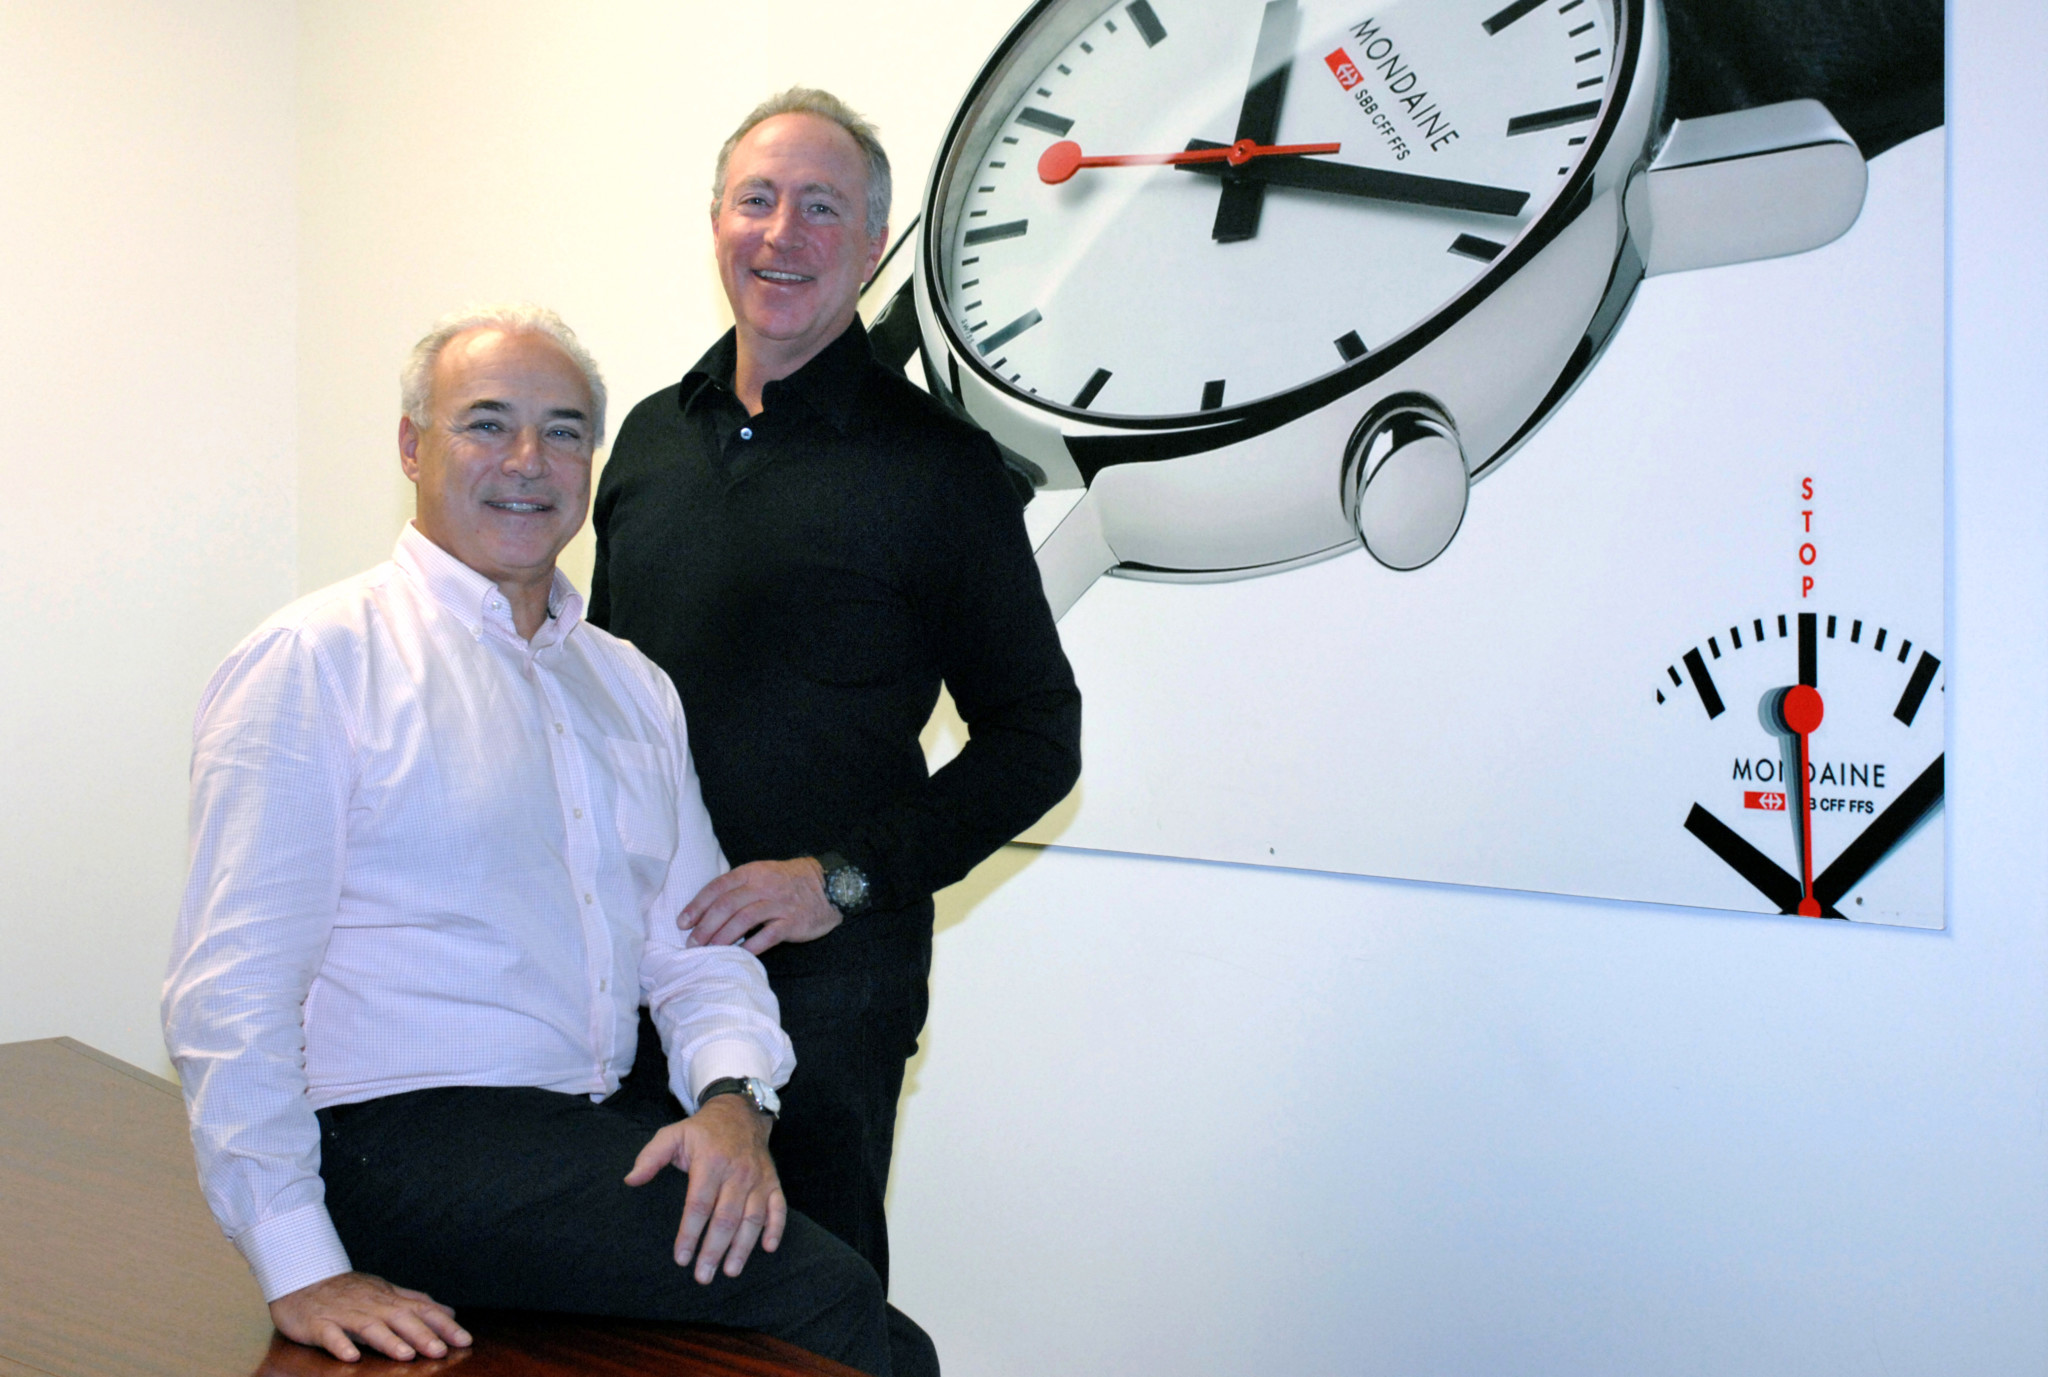 Mondaine's owners André and Ronnie Bernheim are handing control to a new executive leader.